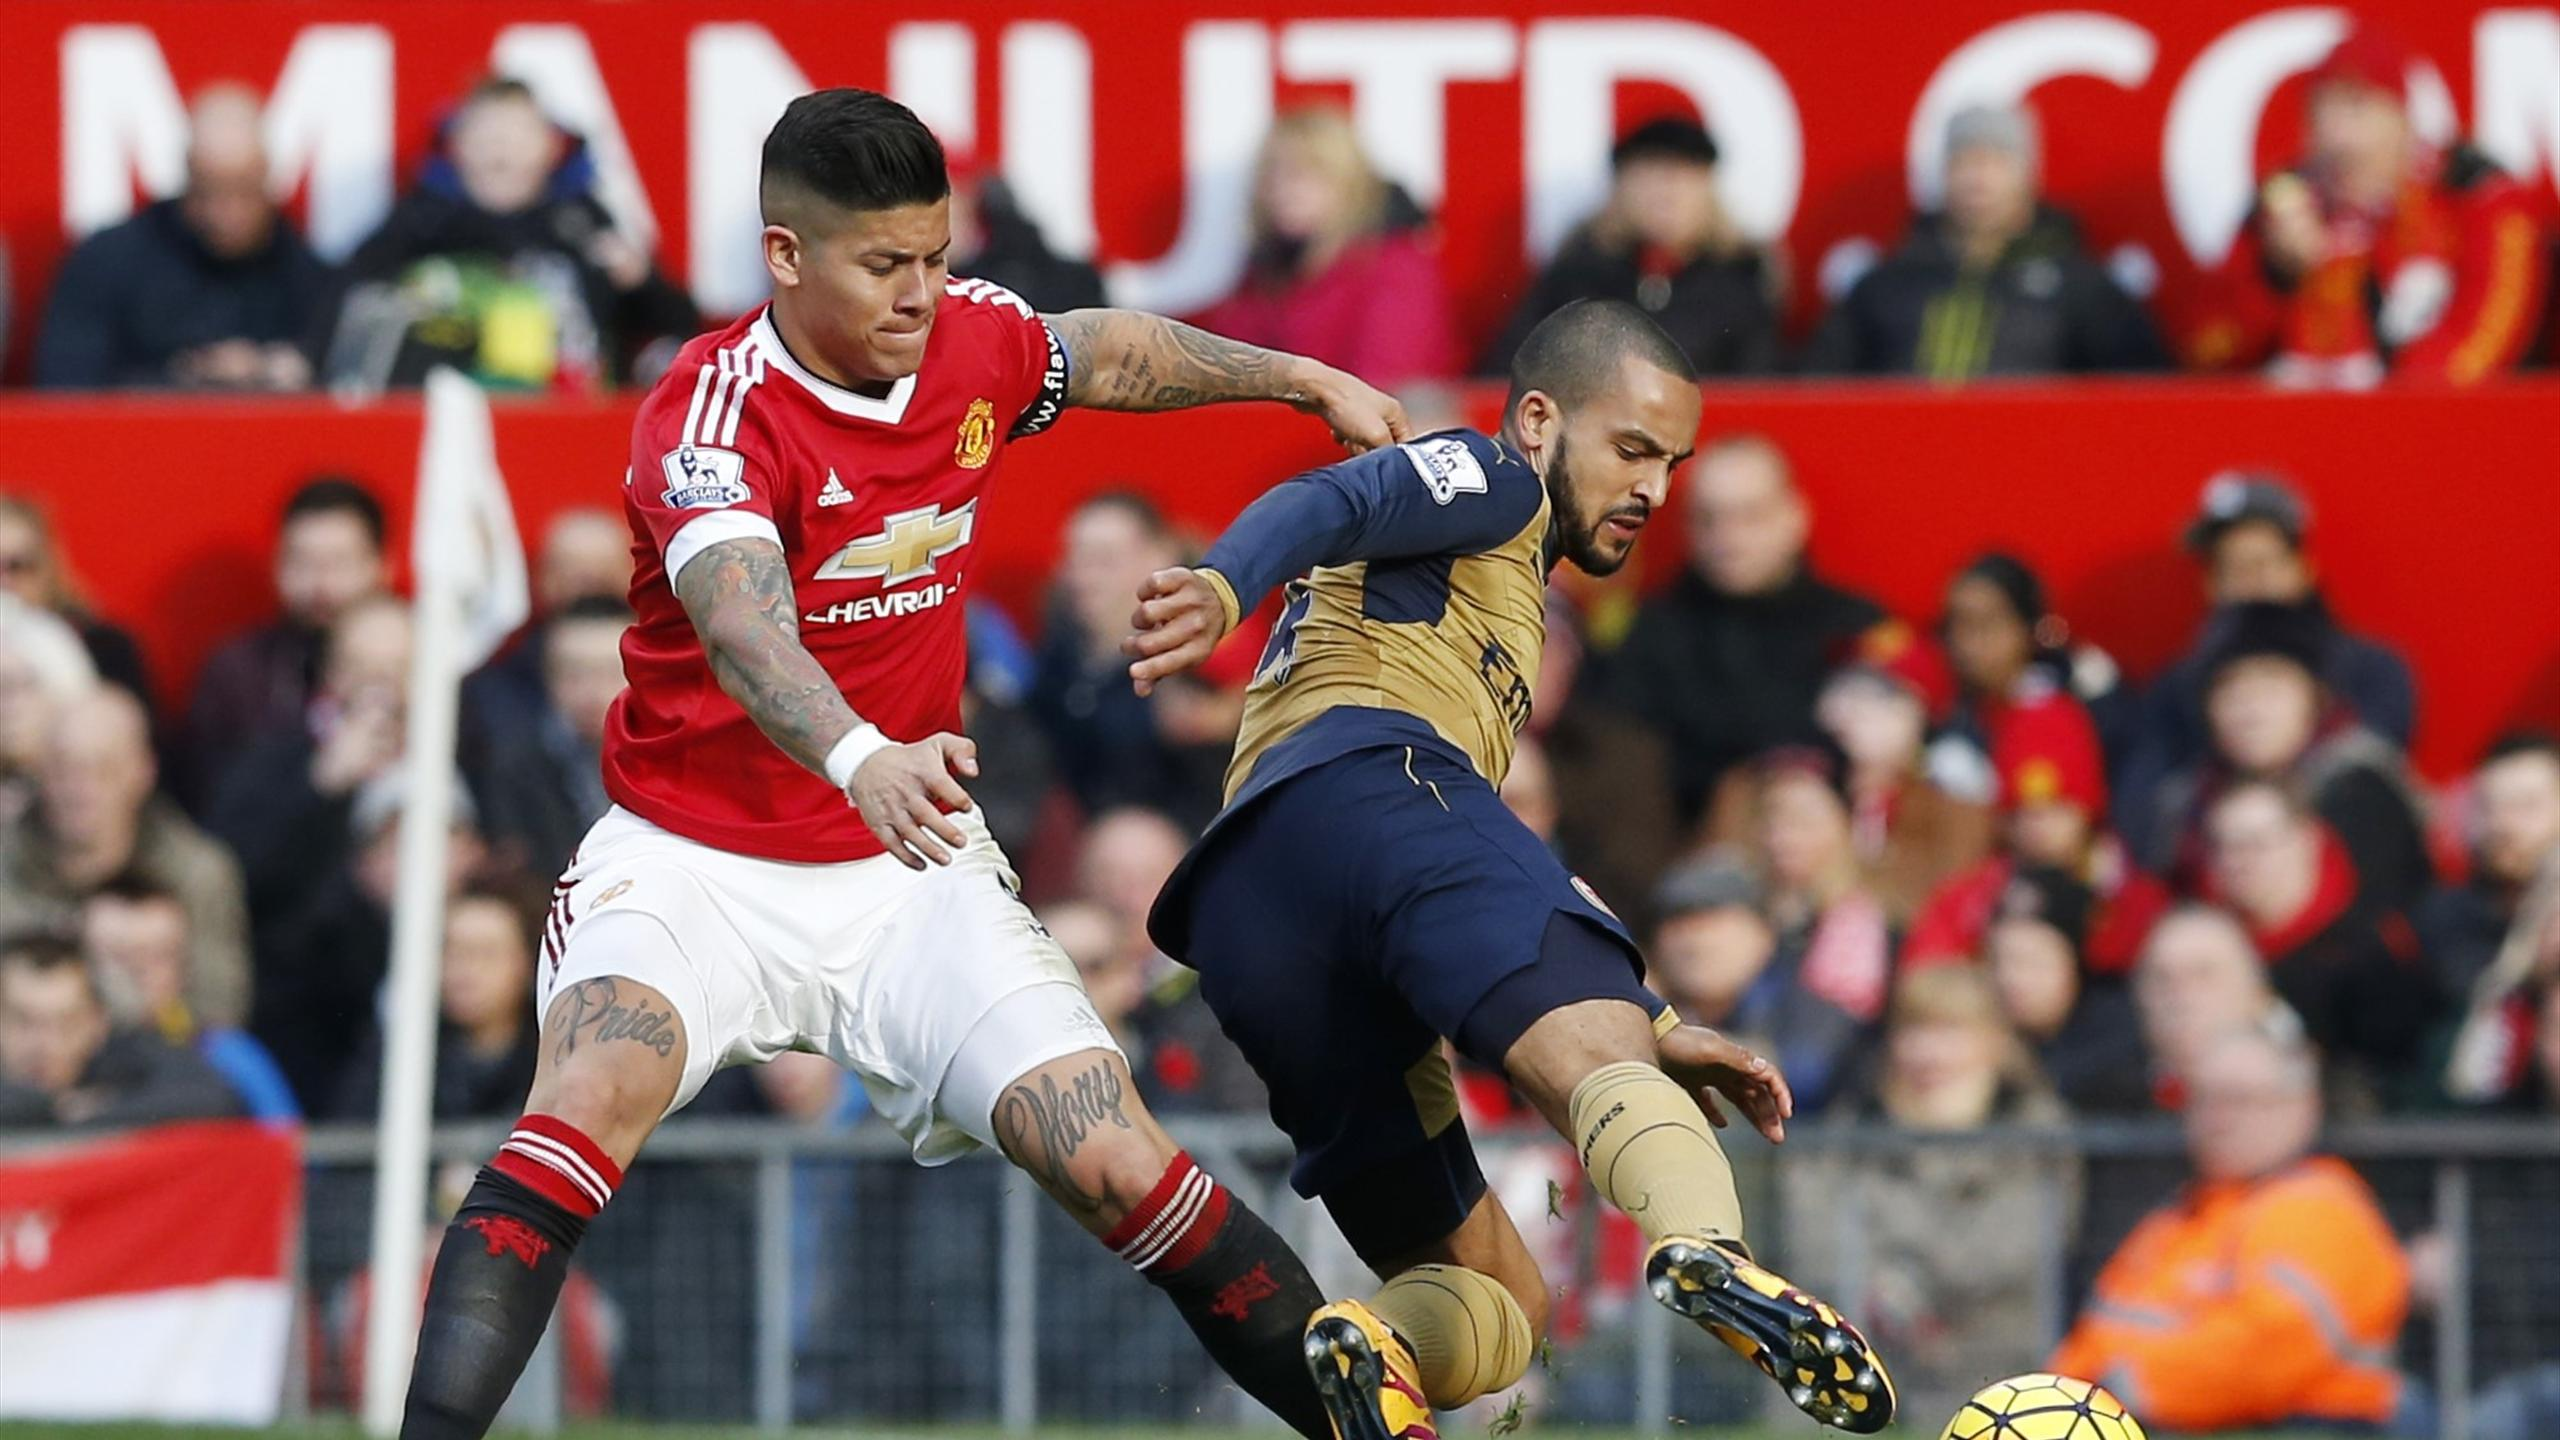 Manchester United's Marcos Rojo and Arsenal's Theo Walcott in action